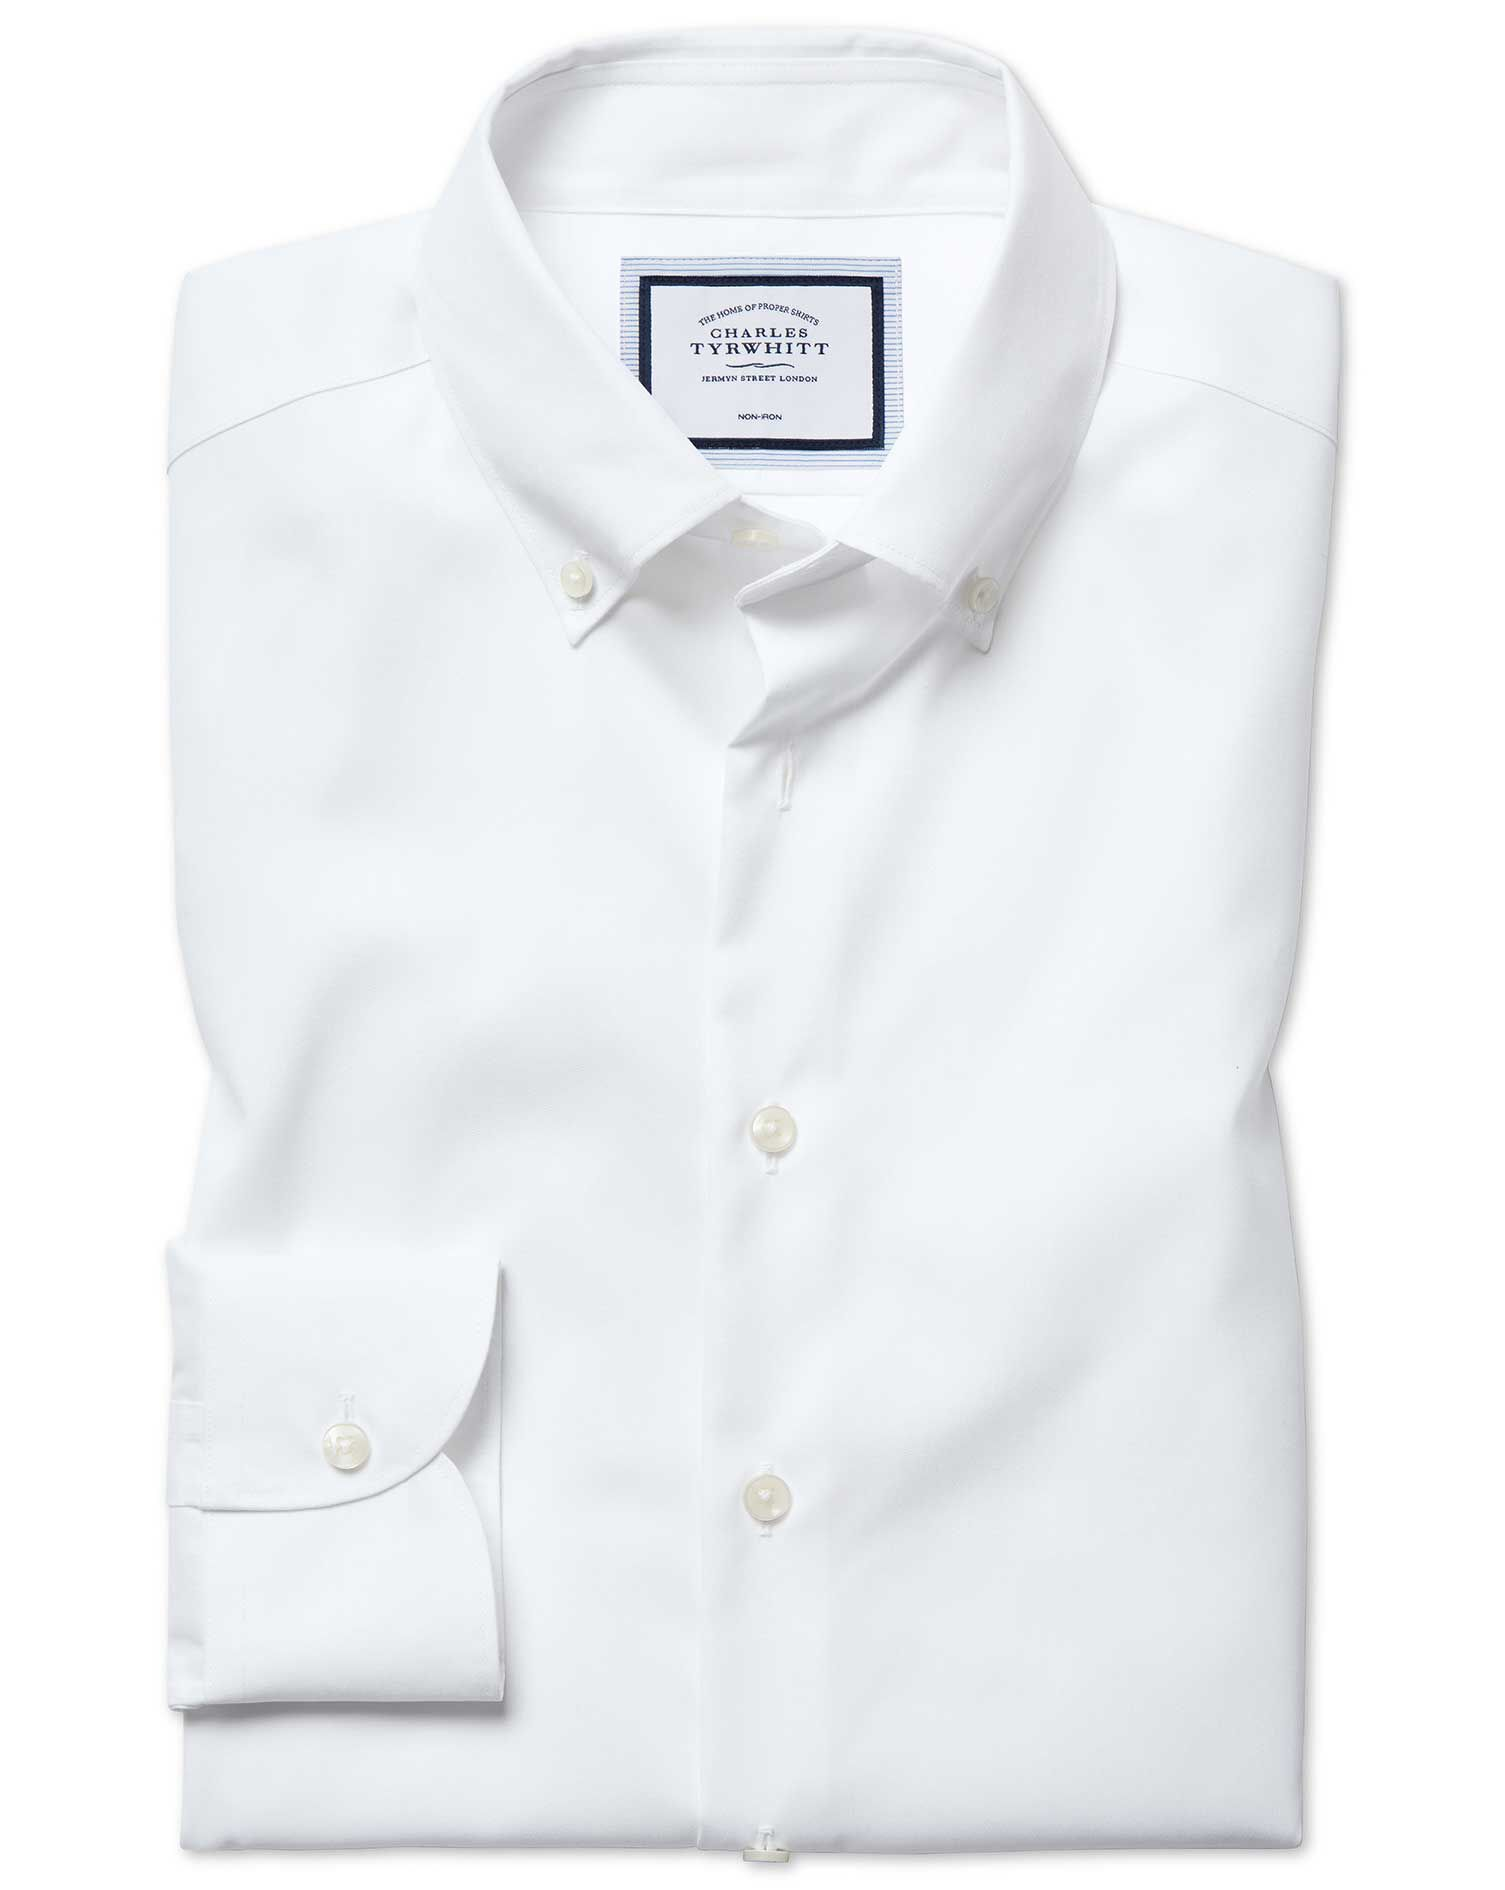 Extra Slim Fit Business Casual Non Iron Button-Down White Cotton Formal Shirt Single Cuff Size 15.5/